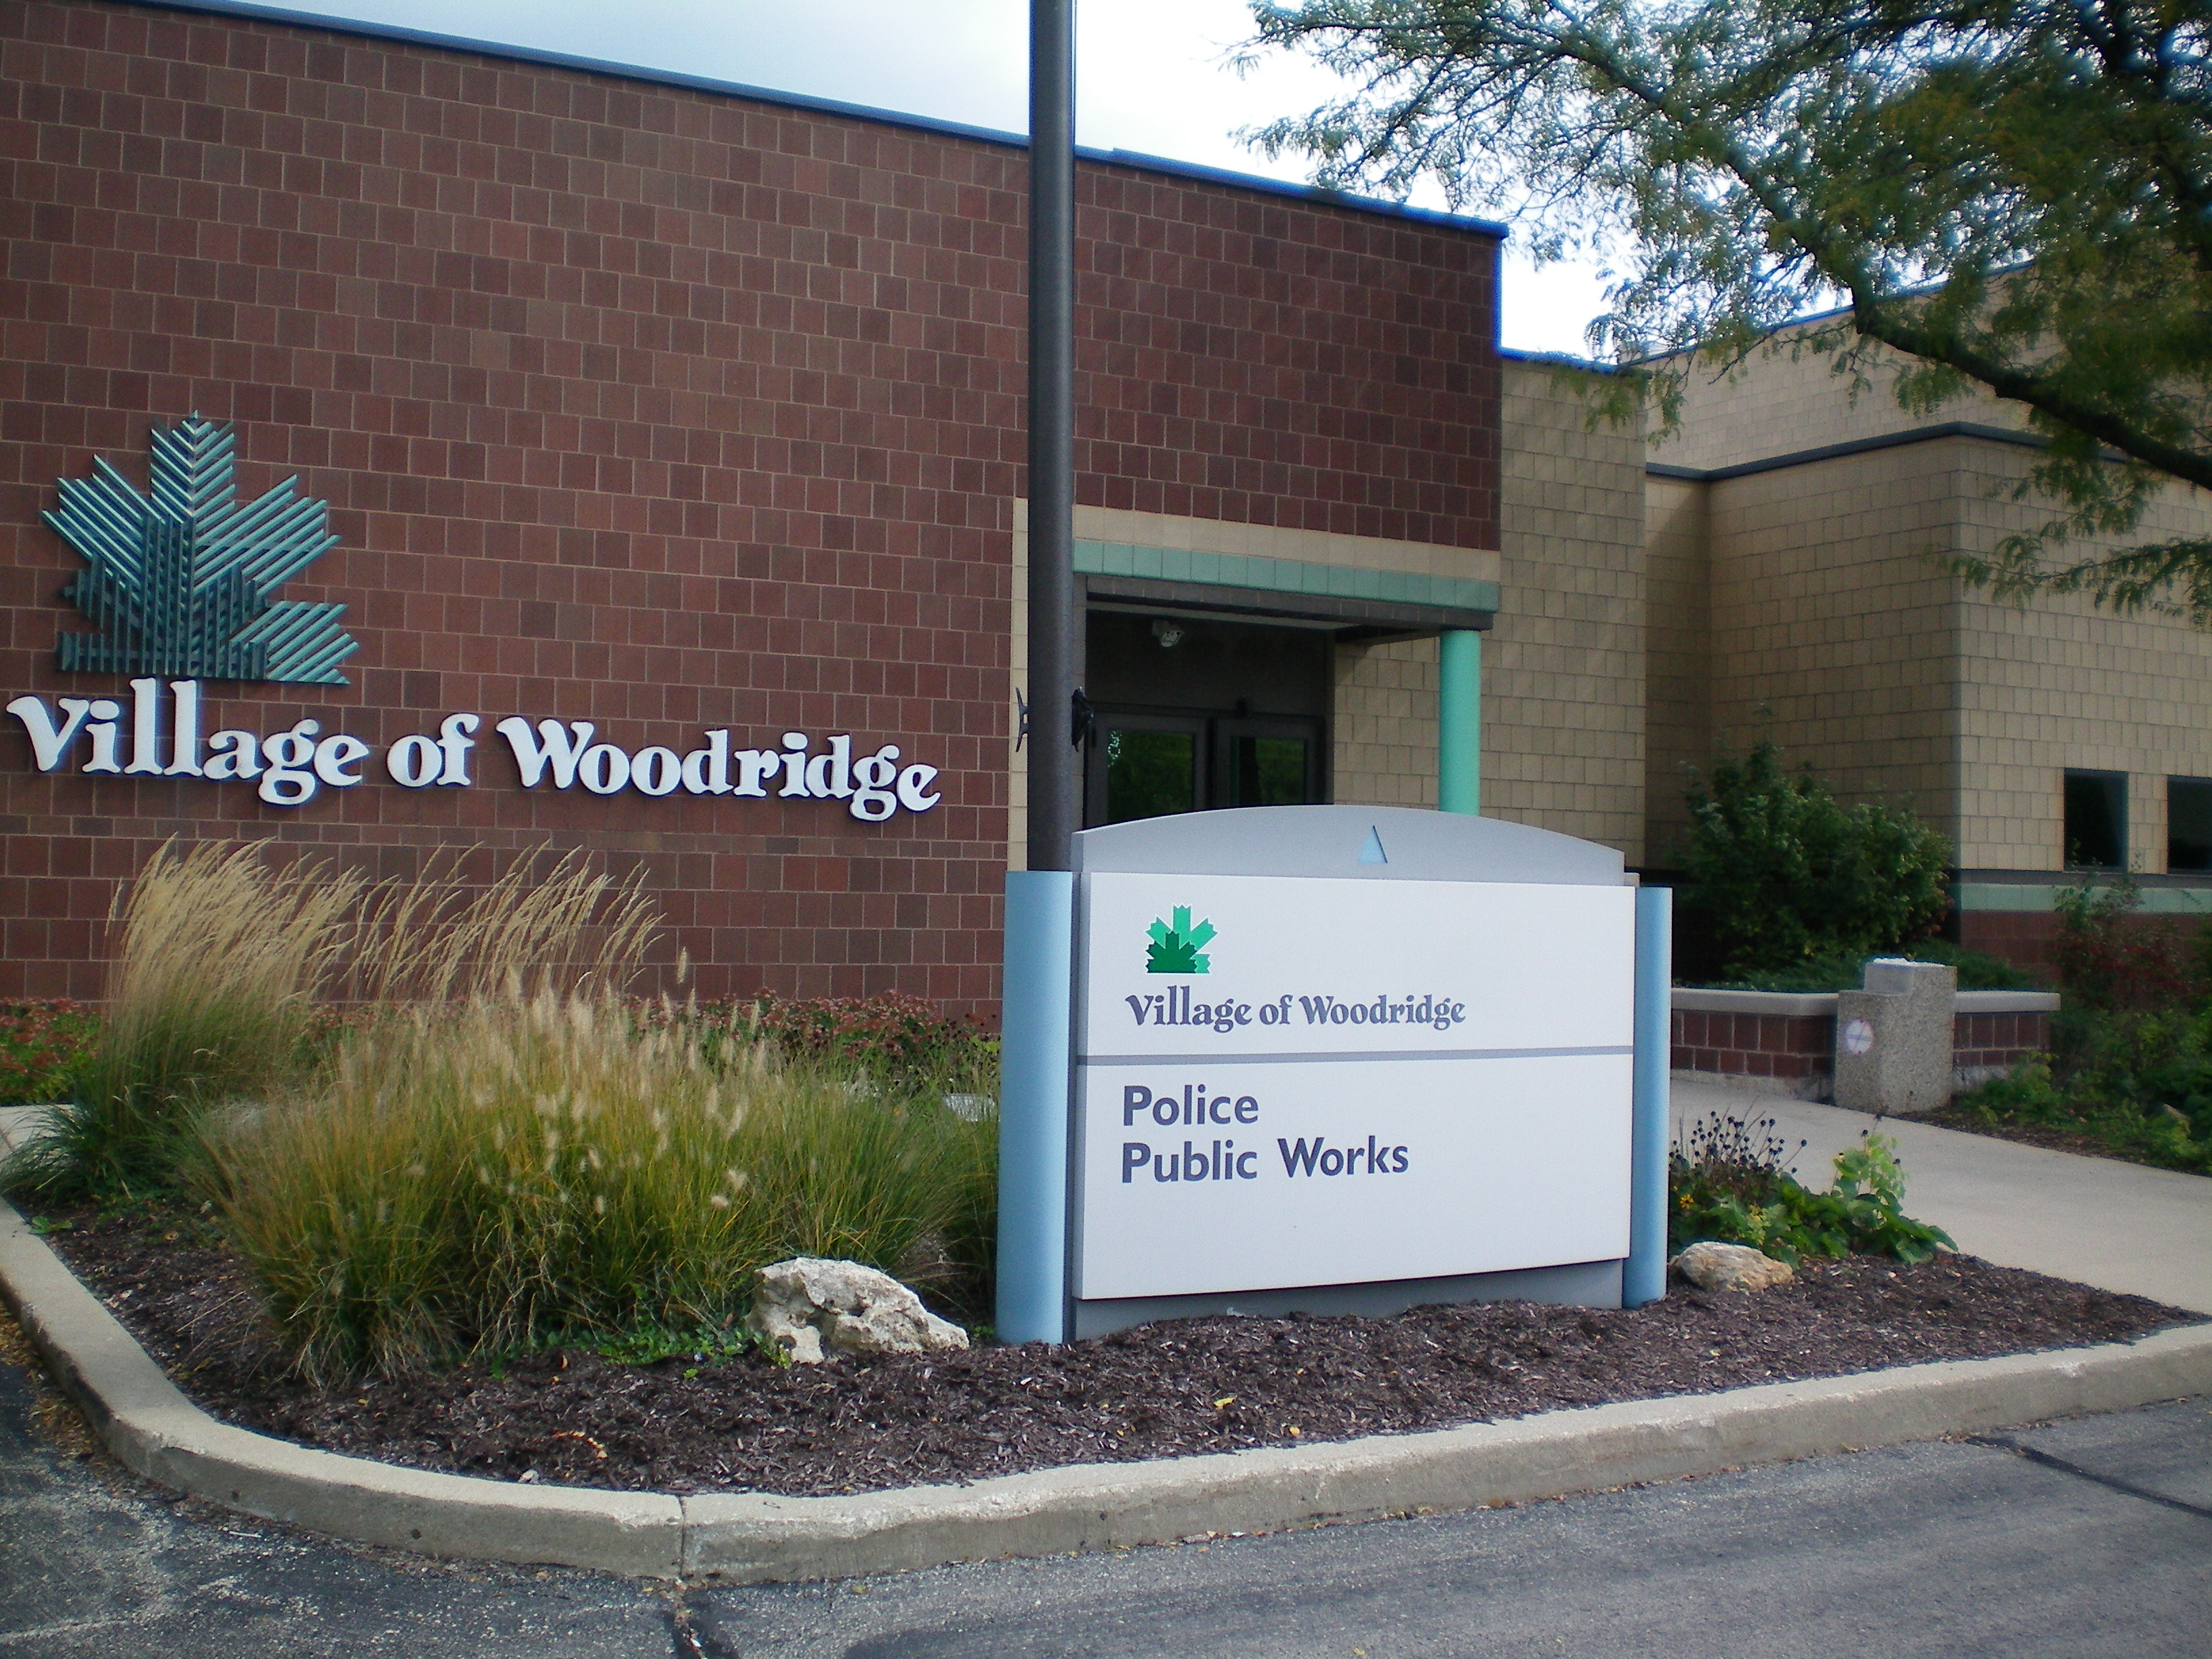 ac woodridge